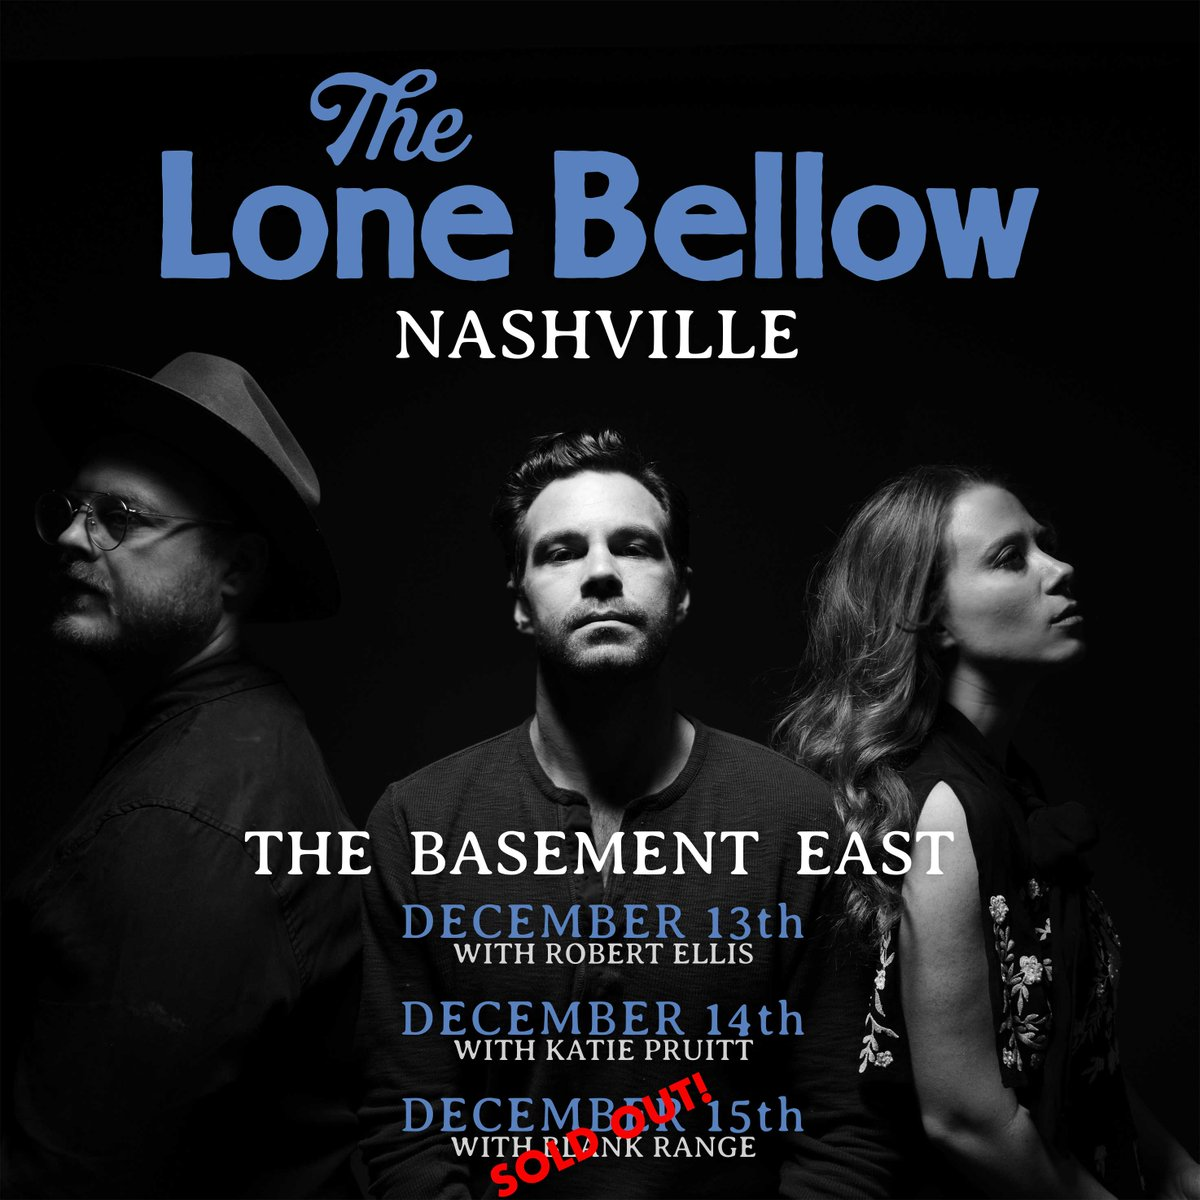 The Saturday, December 15th @TheLoneBellow show is SOLD OUT! Get you tickets ASAP for the 13th & 14th!  13th: http://bit.ly/TLB1213  14th: http://bit.ly/TLB1214